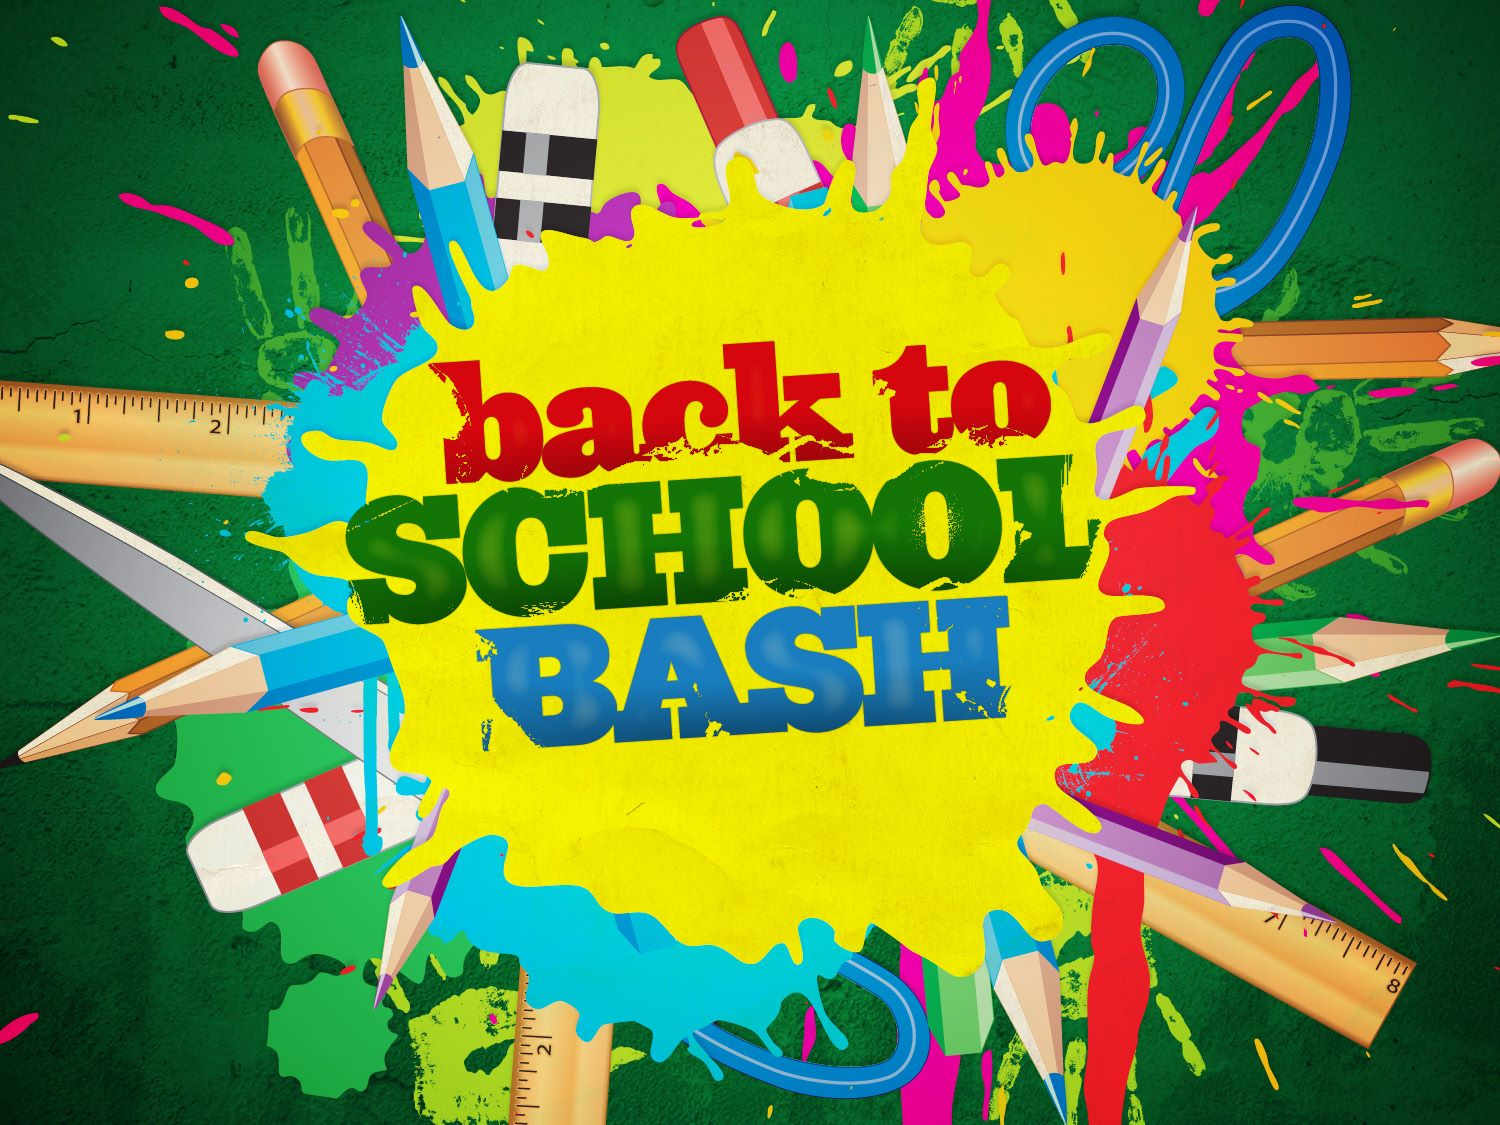 11th Annual Back to School Bash - July 25th